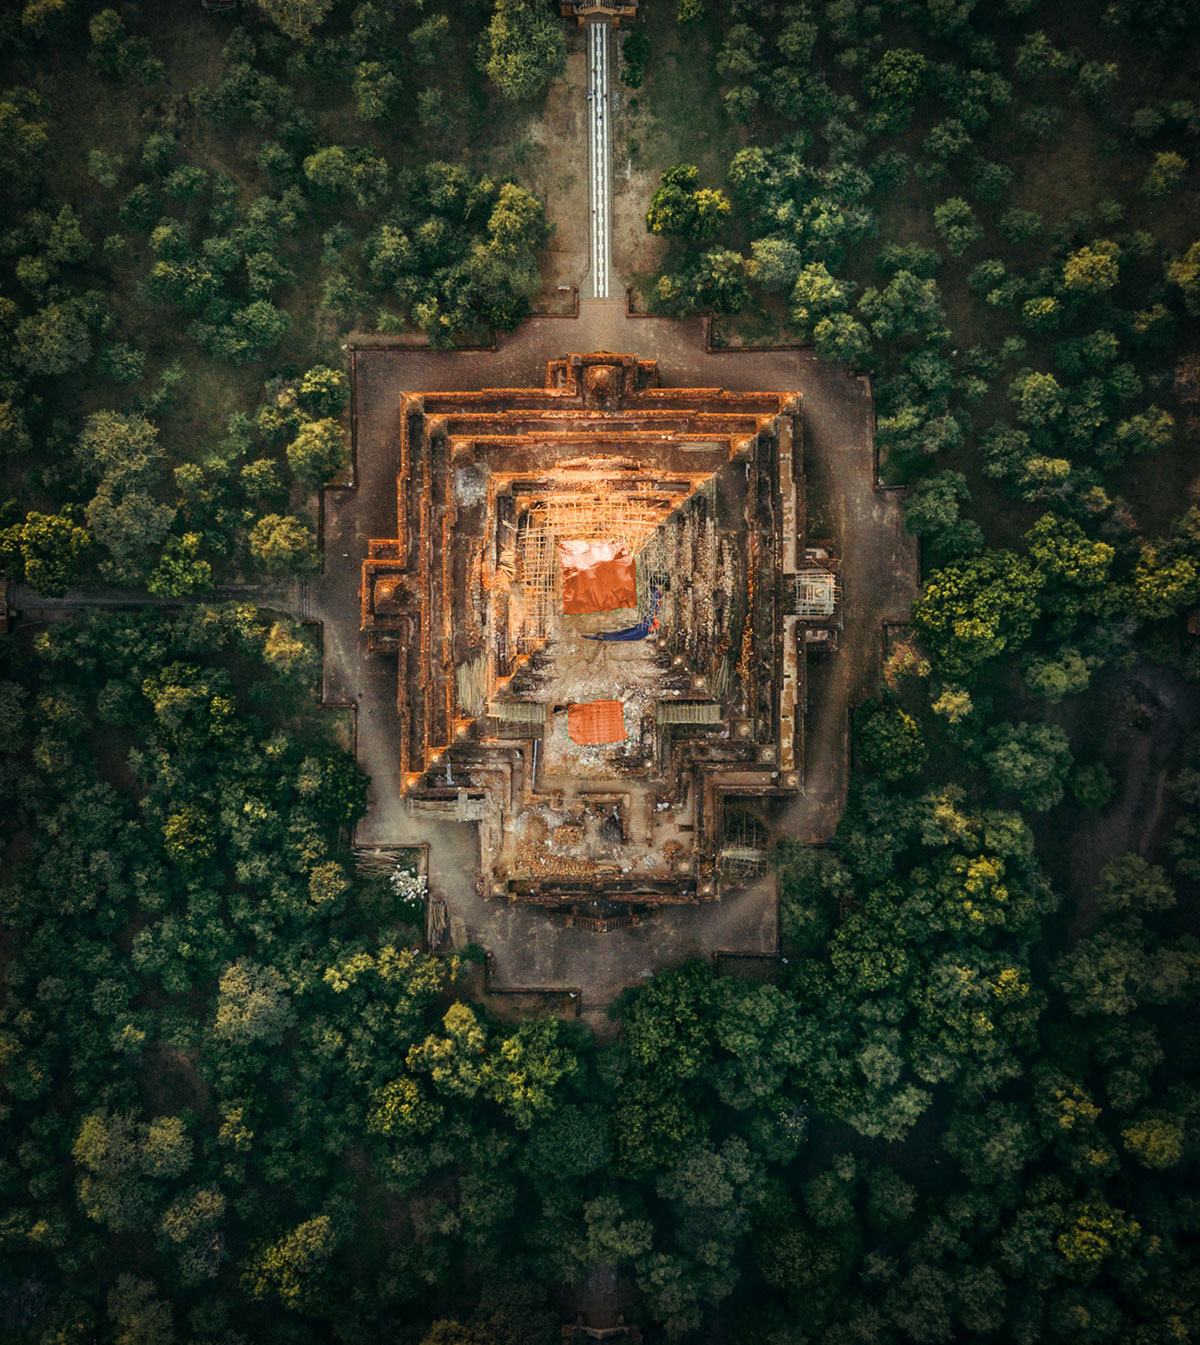 myanmar temples from above by dimitar karanikolov 7 The Amazing Temples of Myanmar from Above (10 Photos)